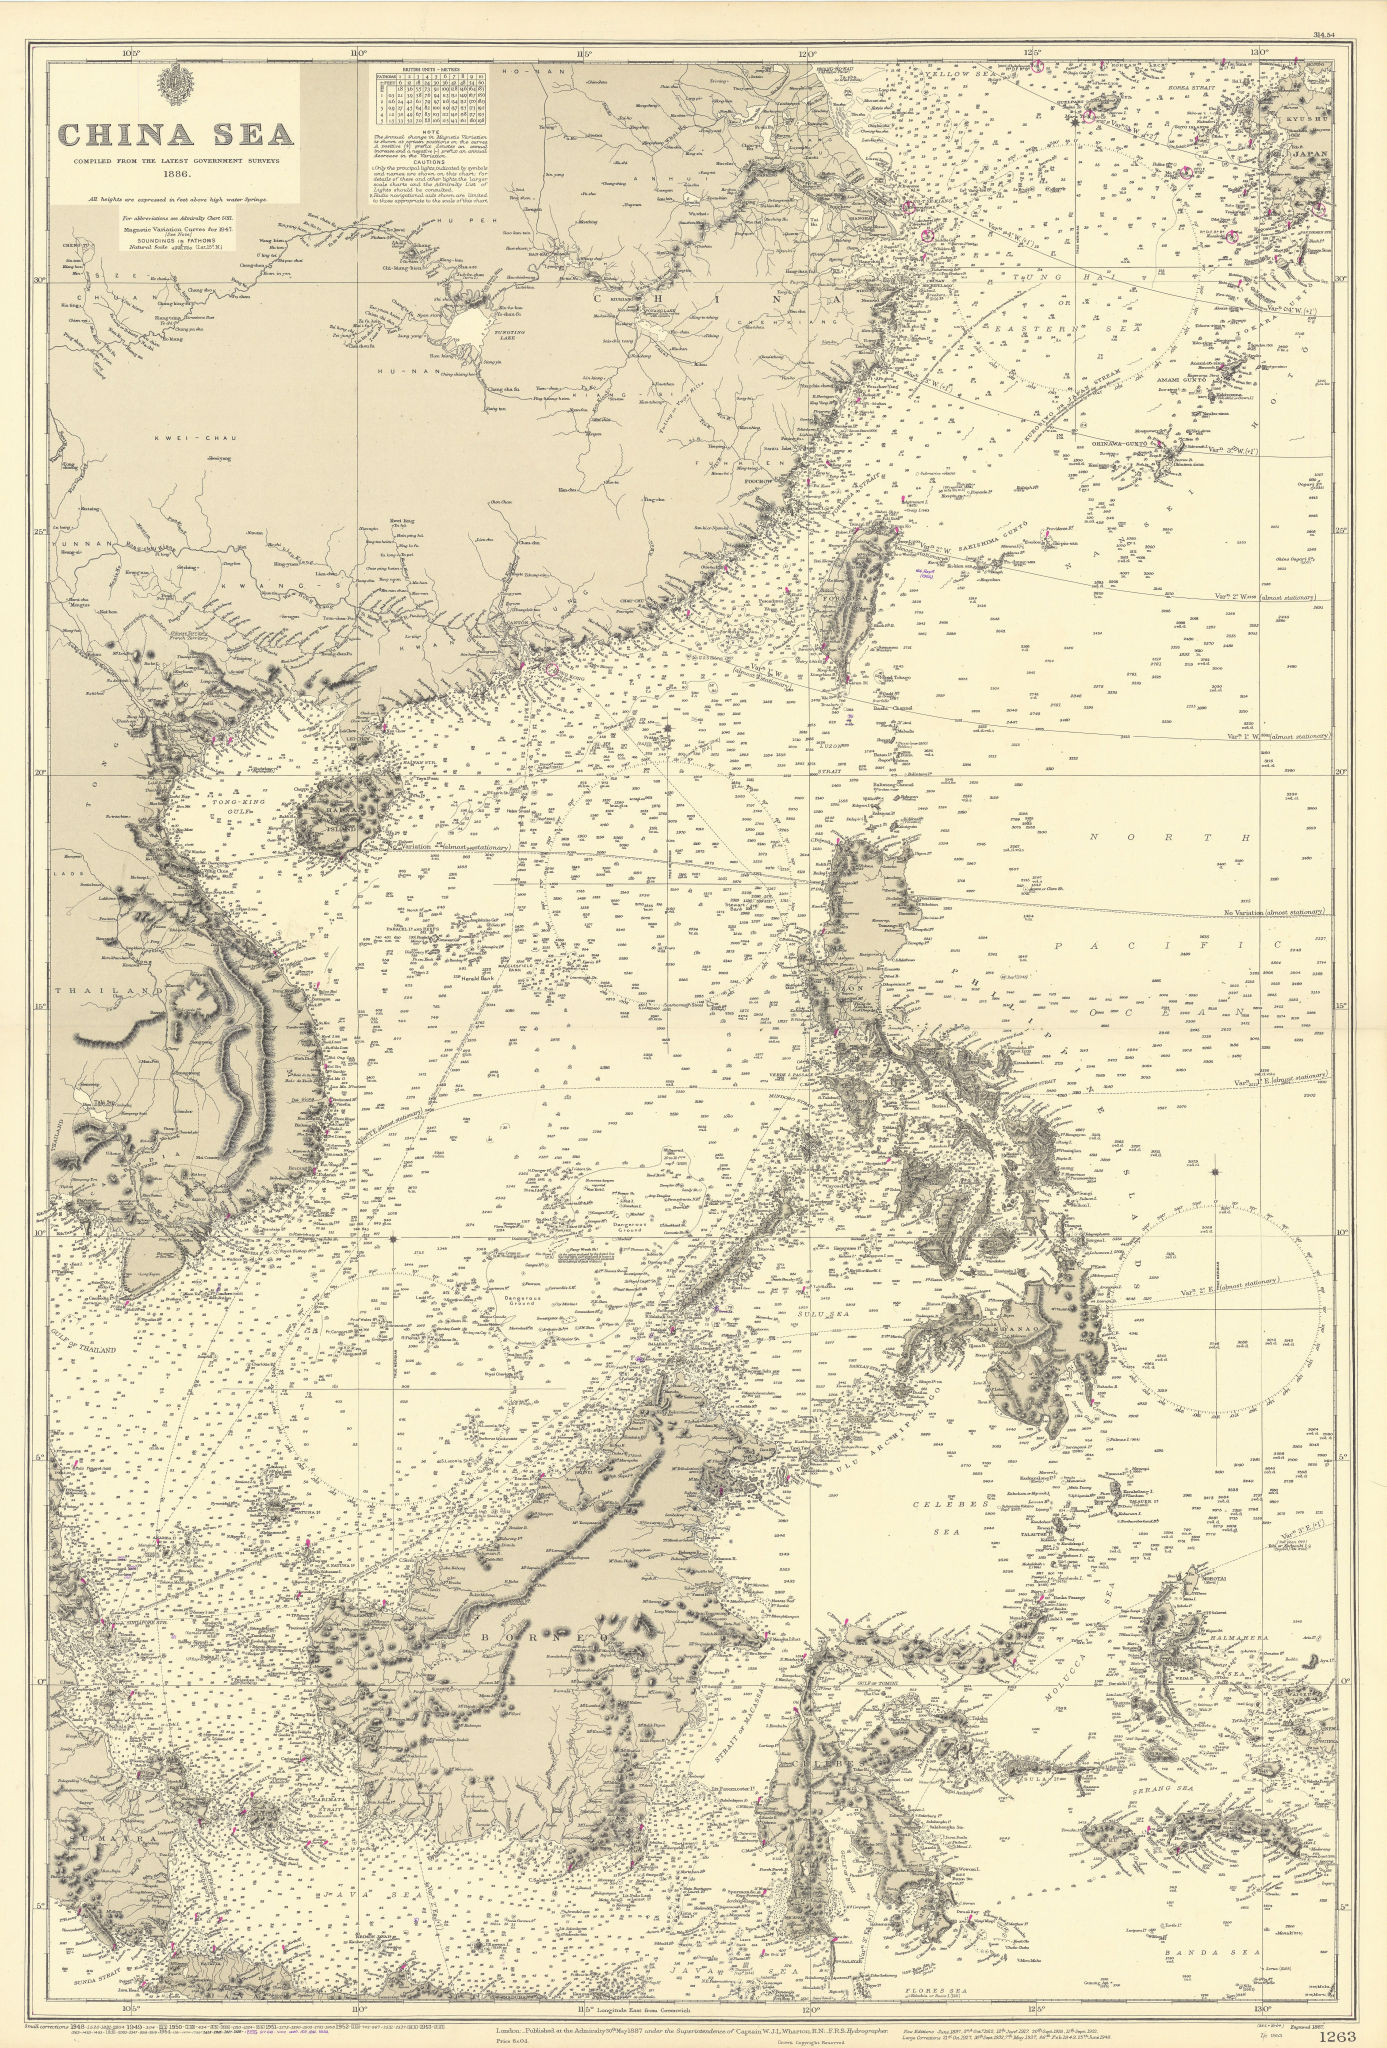 China Sea. East Asia. Philippines Indonesia. ADMIRALTY sea chart 1887 (1955) map